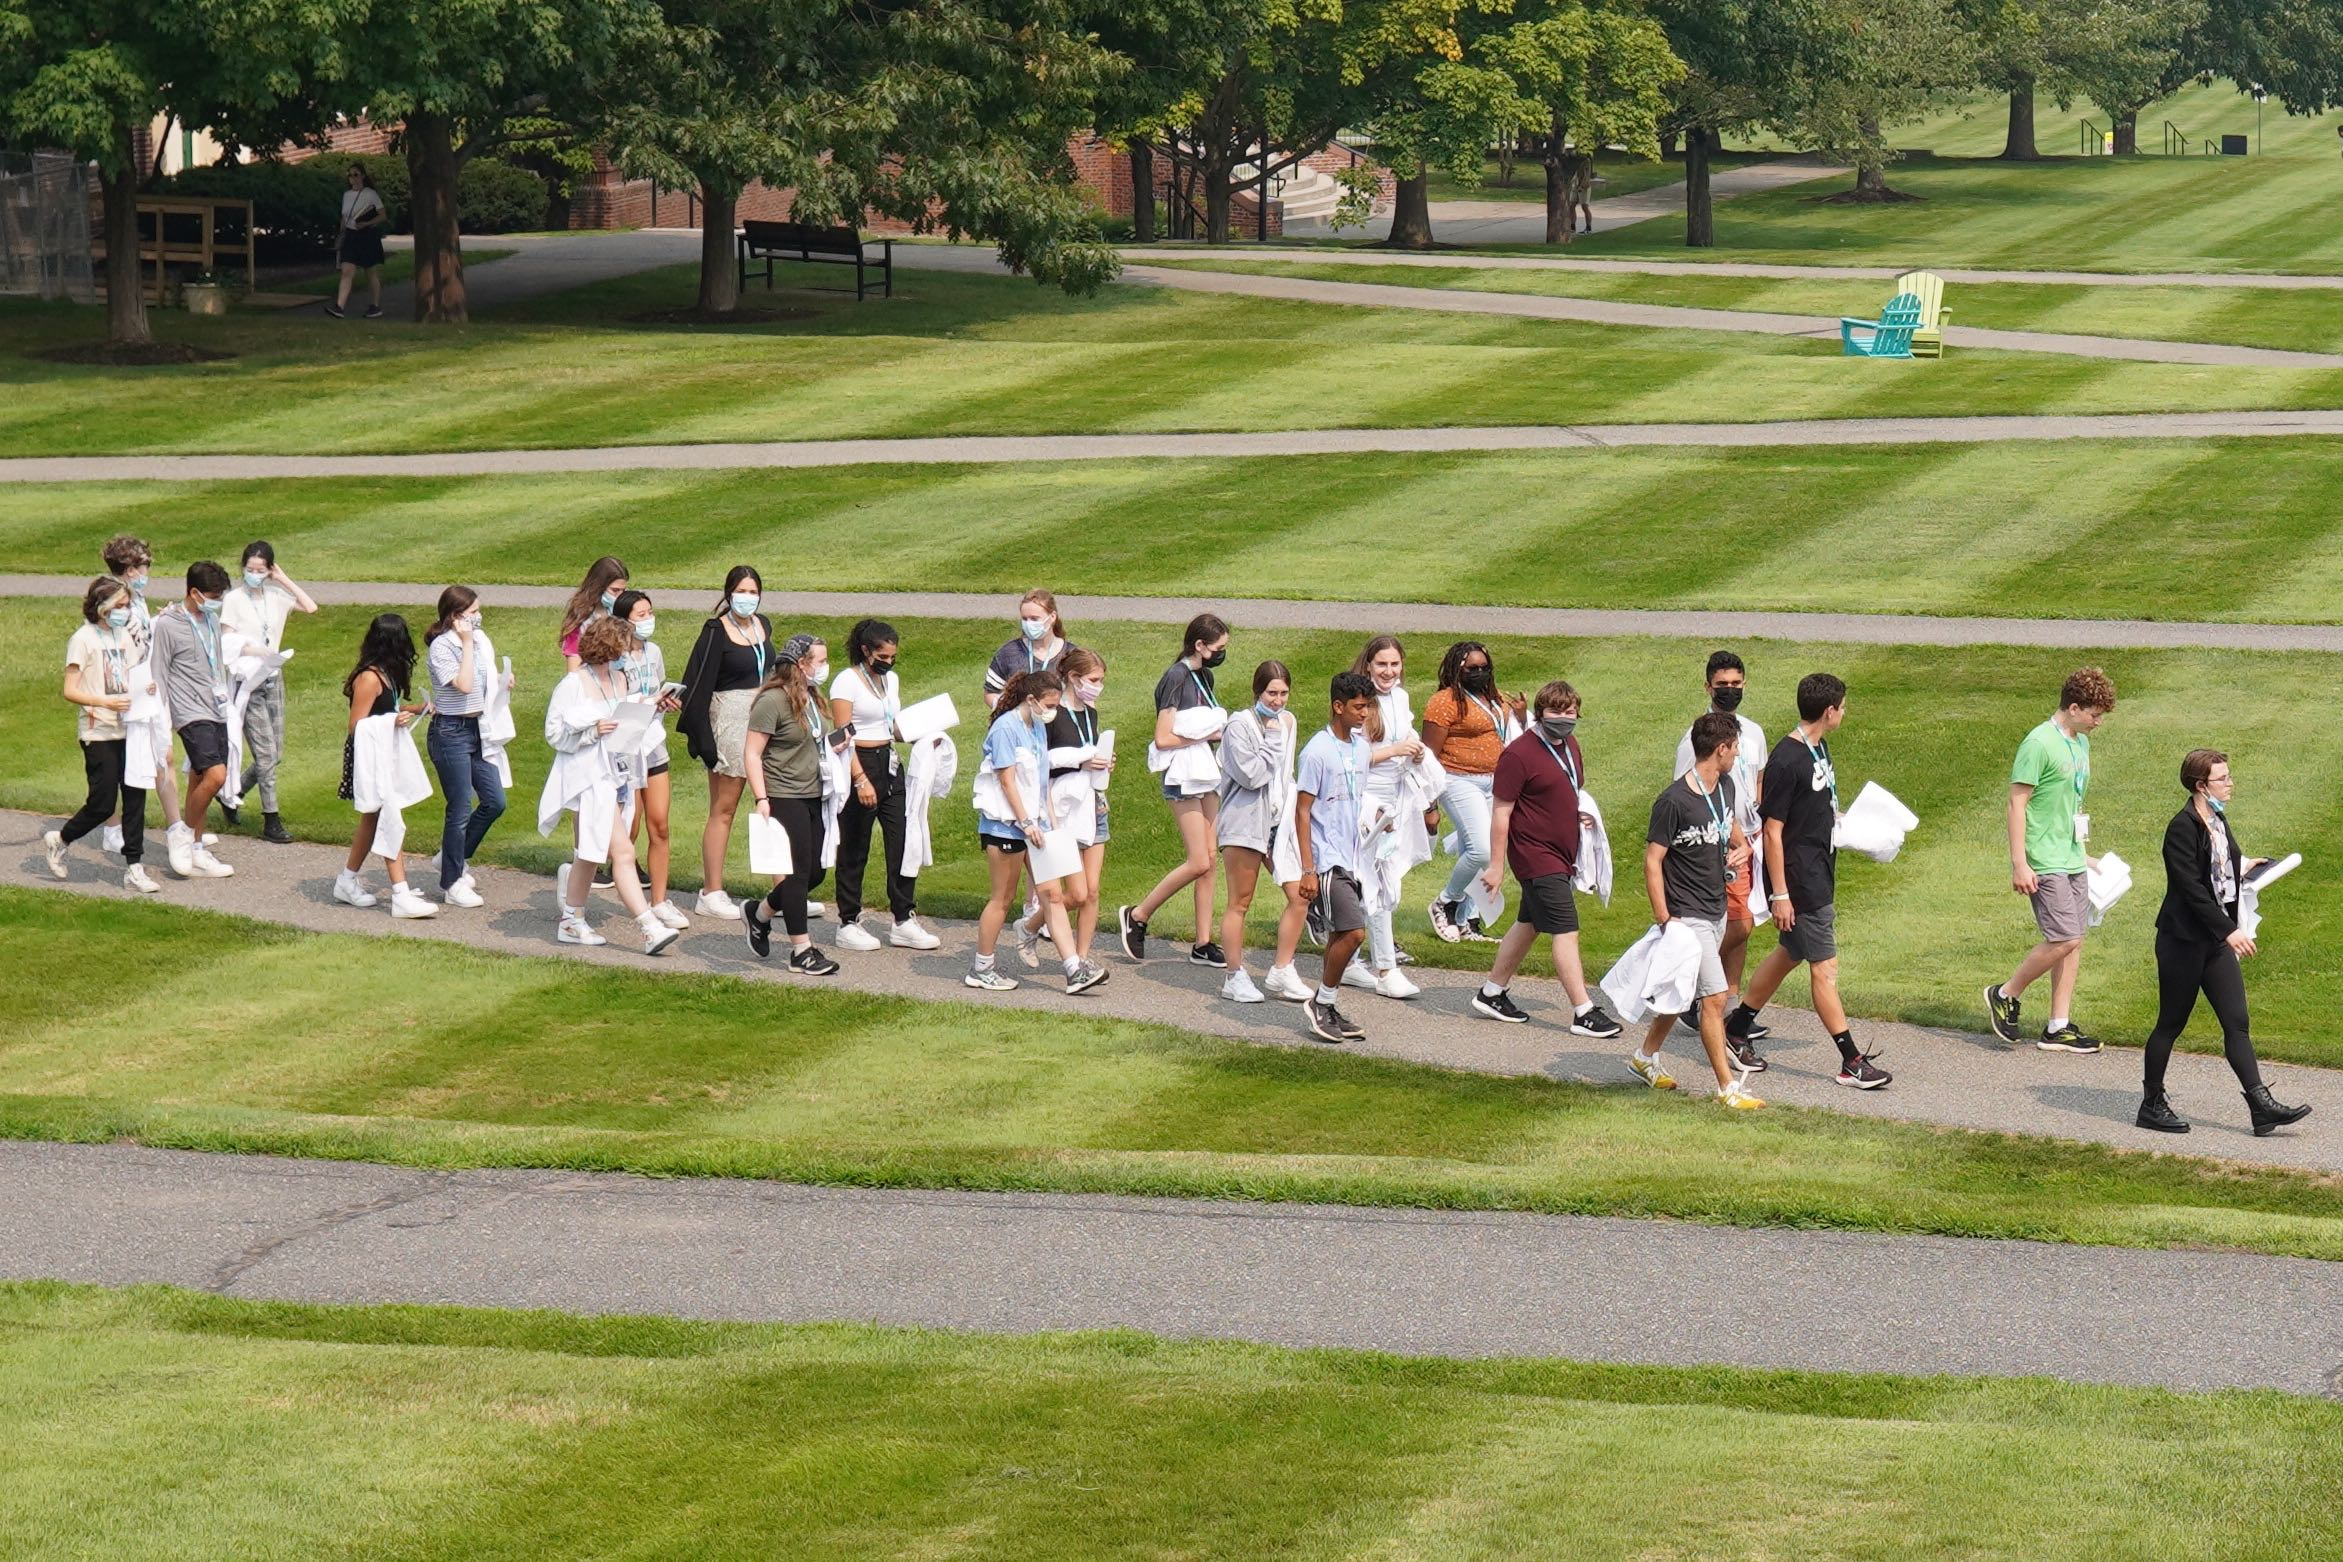 Medical Rotations students follow their Teaching Fellow, Maddie, as they lead them toward the Miller Library.